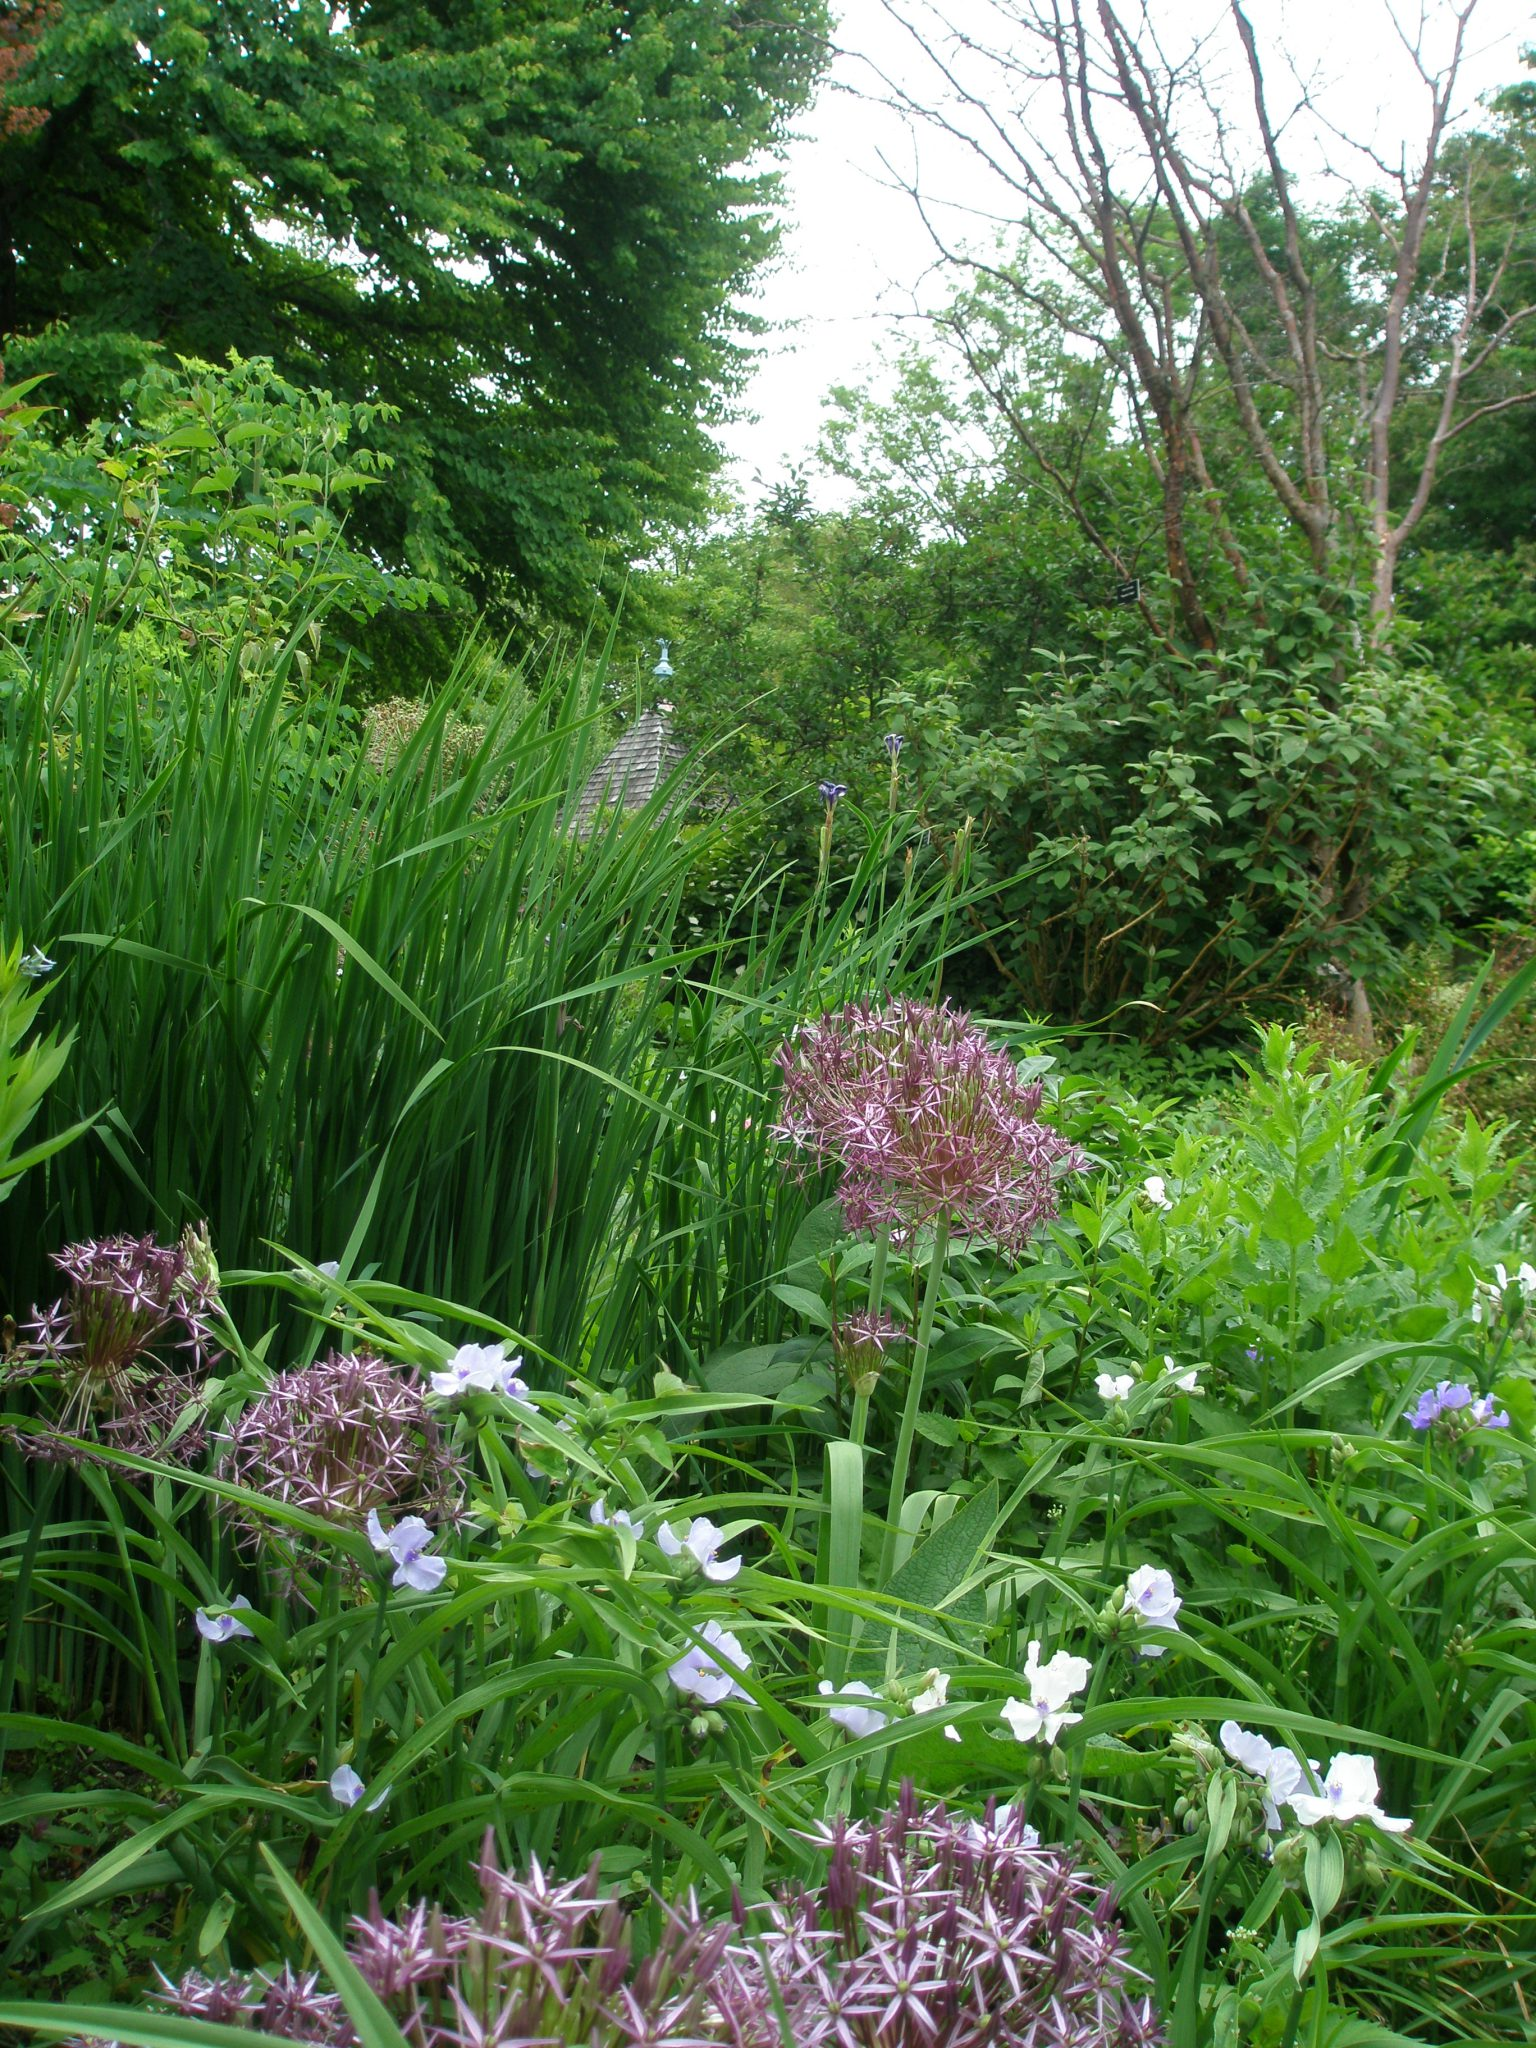 Giant Alliums bloom, after Iris blossoms have withered.